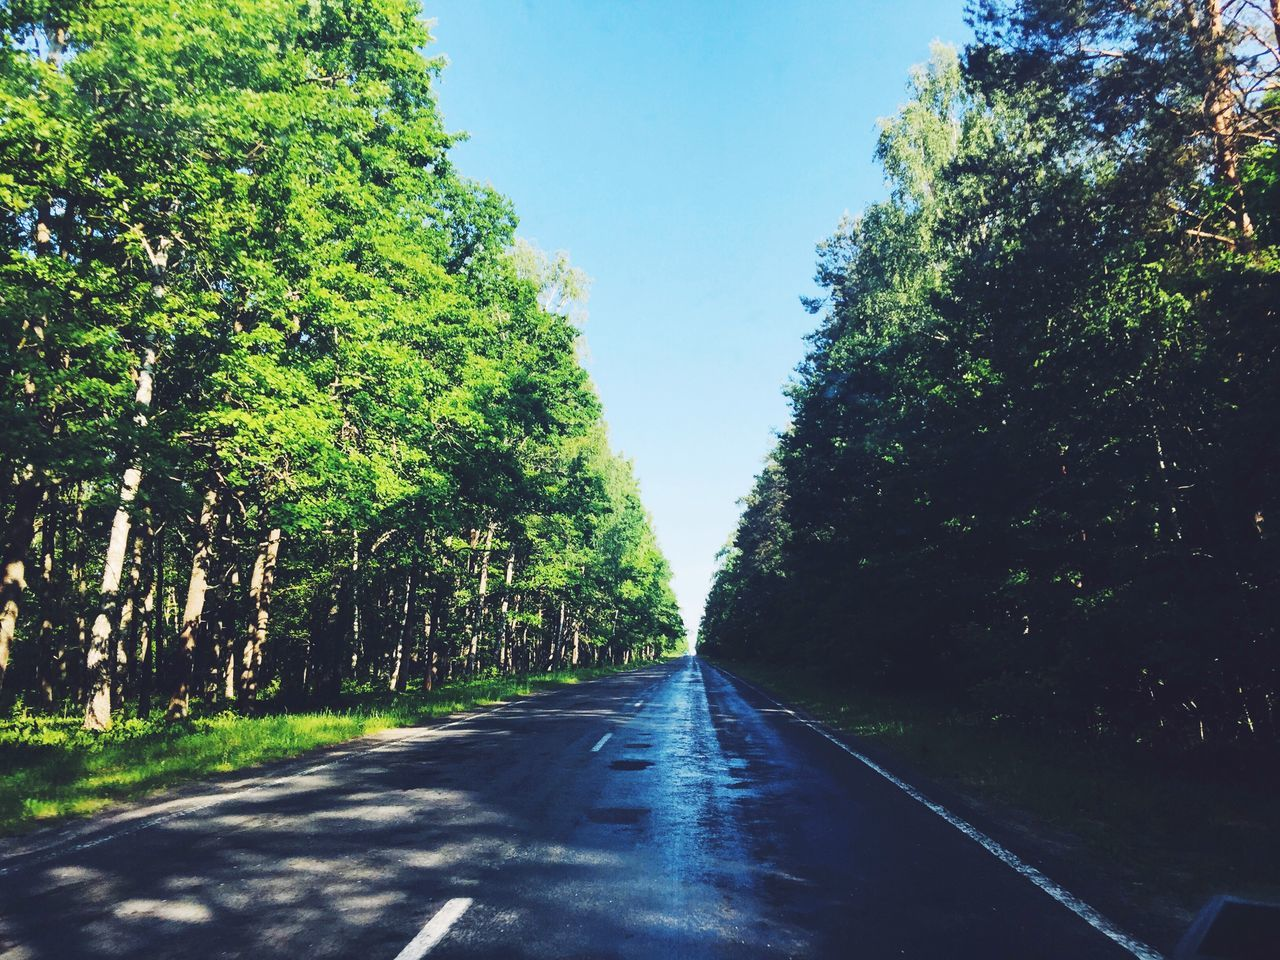 Wet road in the middle of the Forrest Nature Green Beautiful Belarus Ukraine Boarder Forrest Green Road